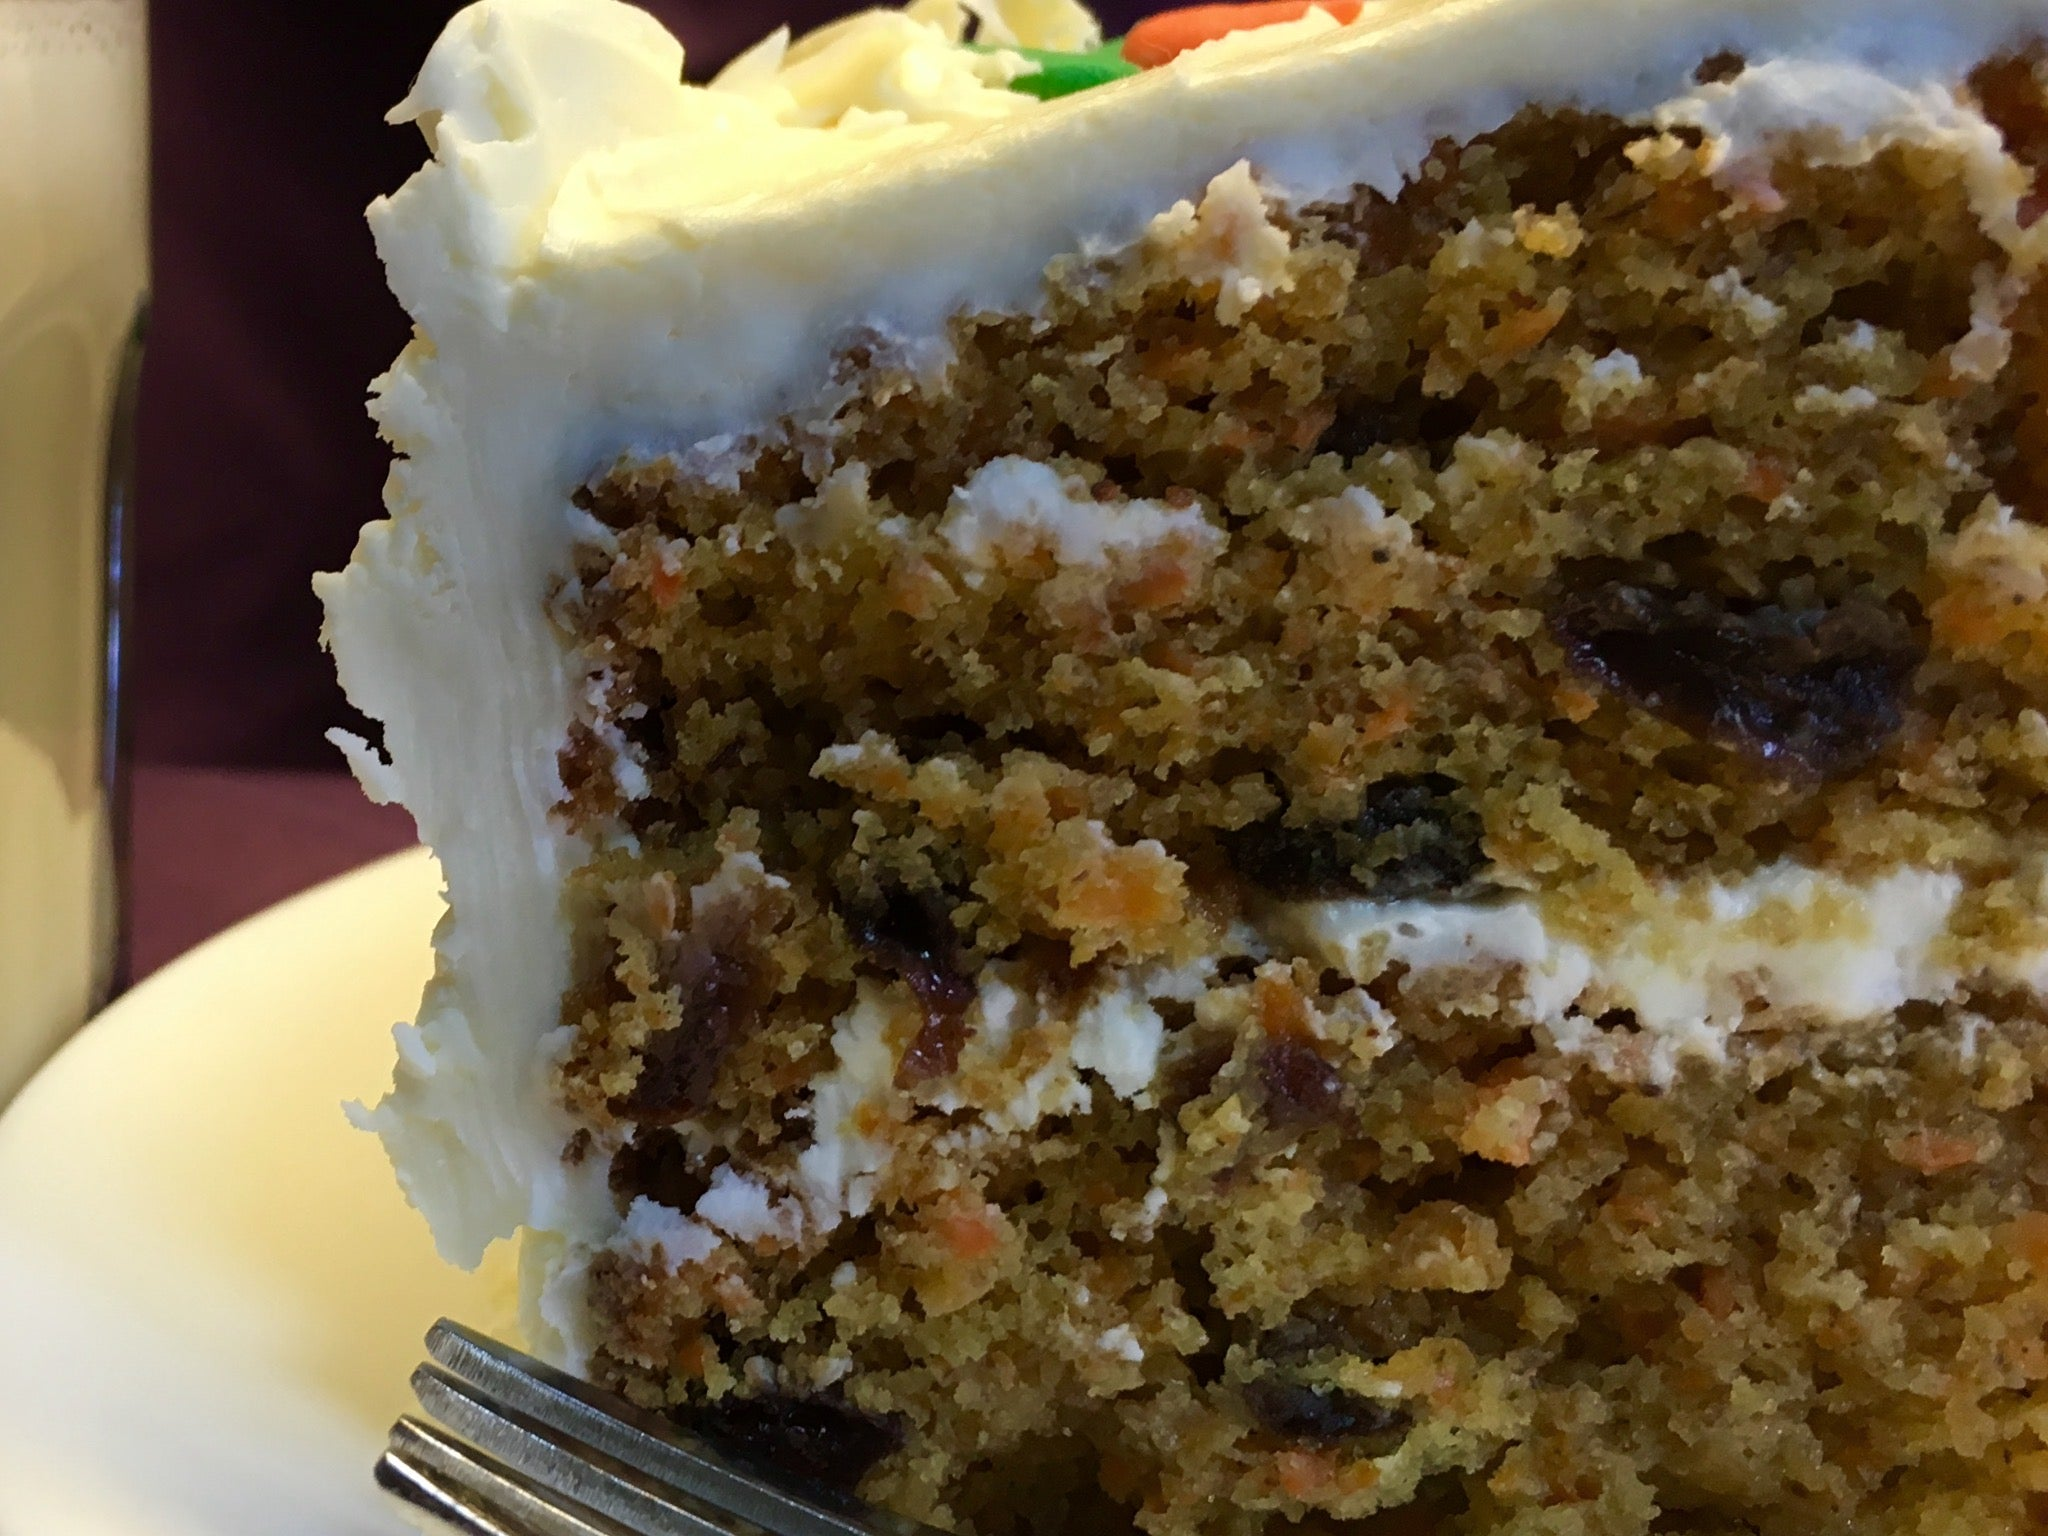 Carefree Carrot Cake